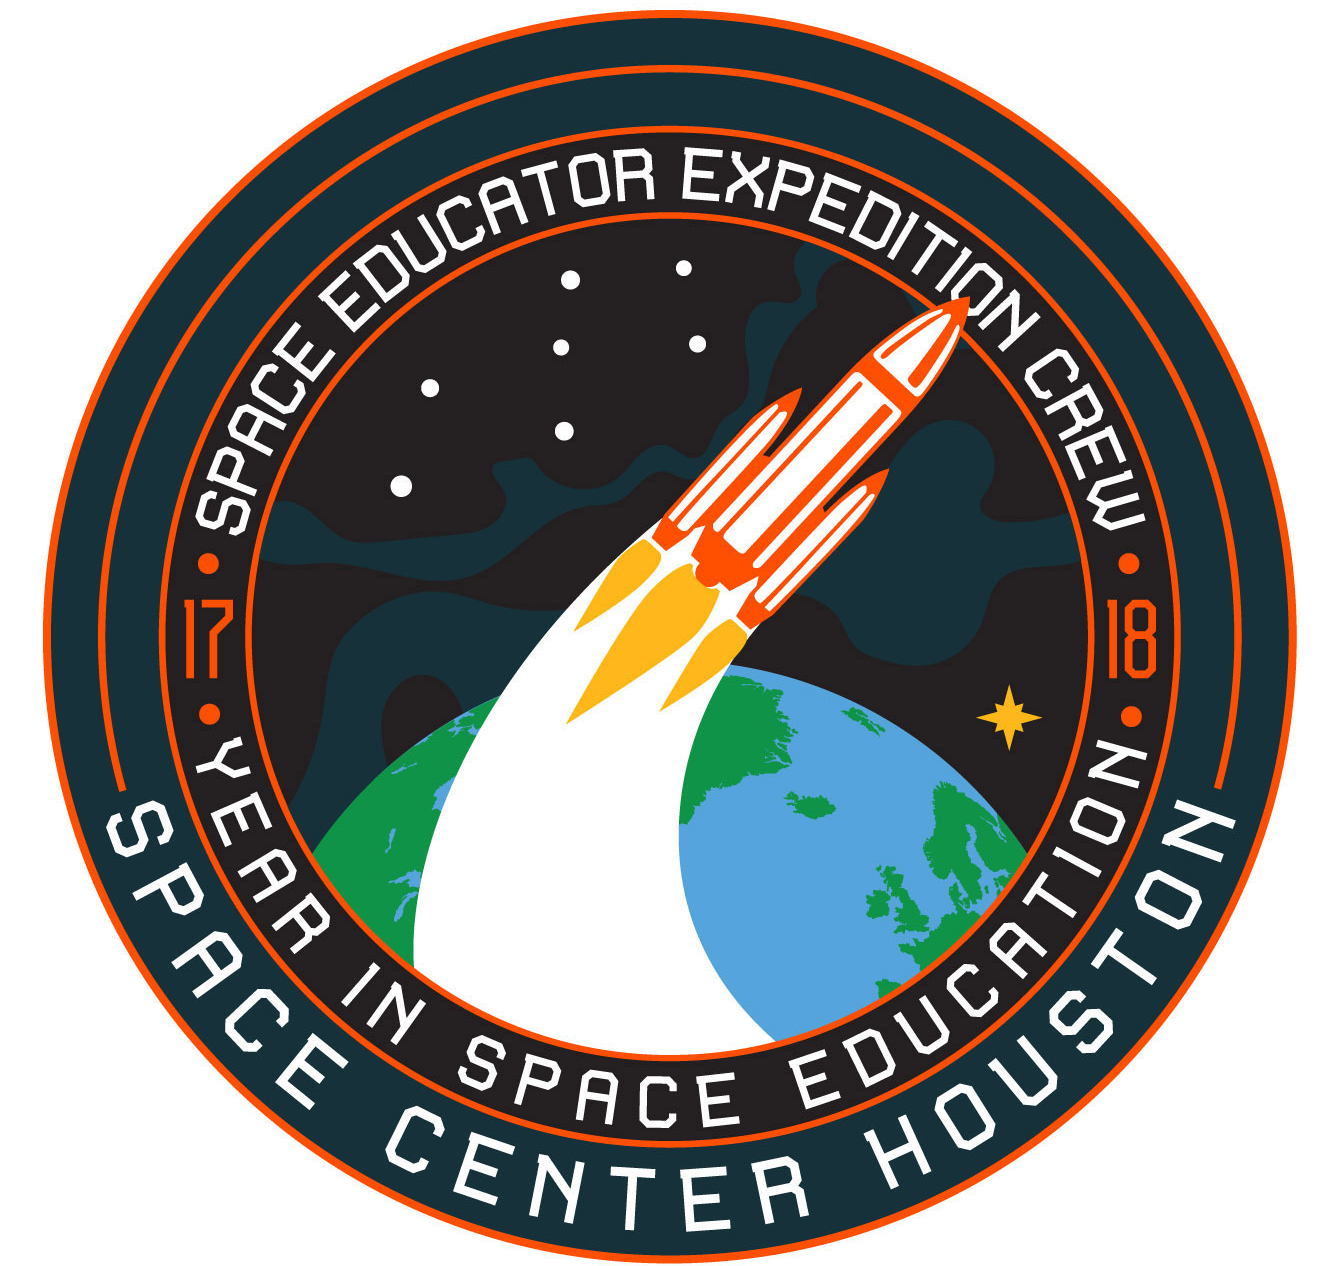 2017-2018 Space Educator Expedition Crew Logo